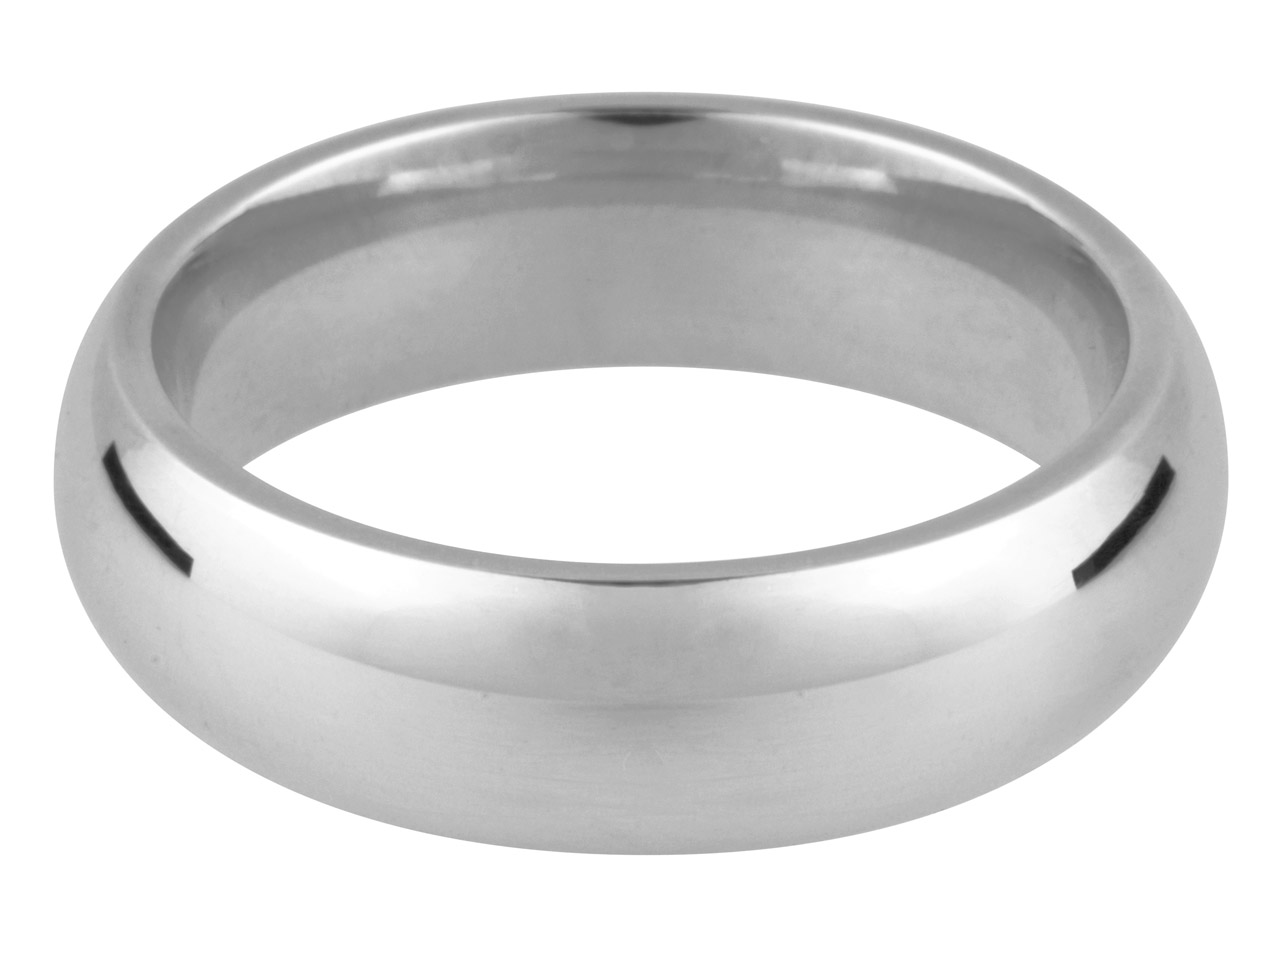 18ct White Court Wedding Ring 2.5mm K 3.5gms Medium Weight Hallmarked   Wall Thickness 1.65mm